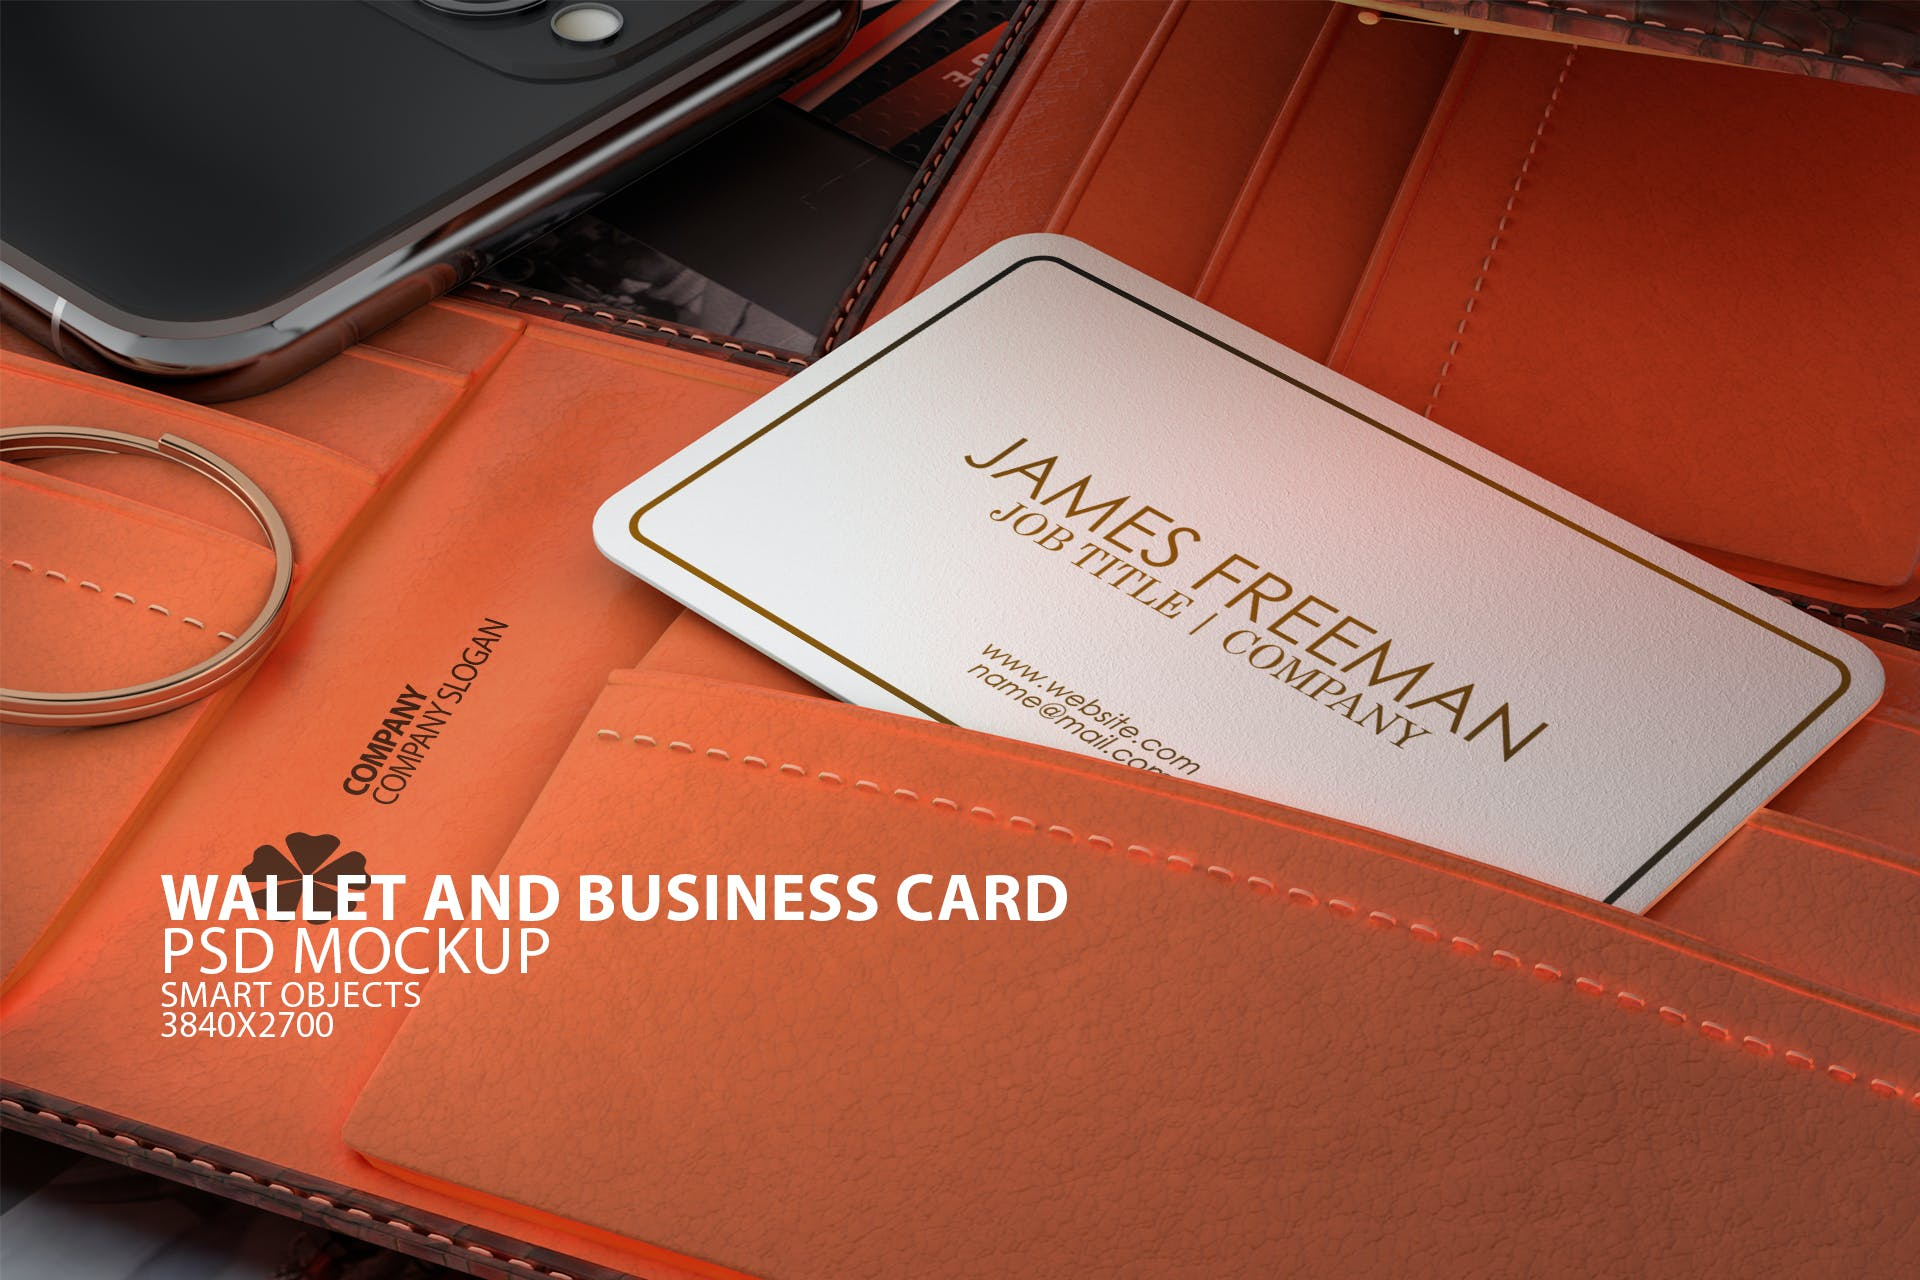 Pro-Wallet-with-Business-Card-PSD-Mock-up